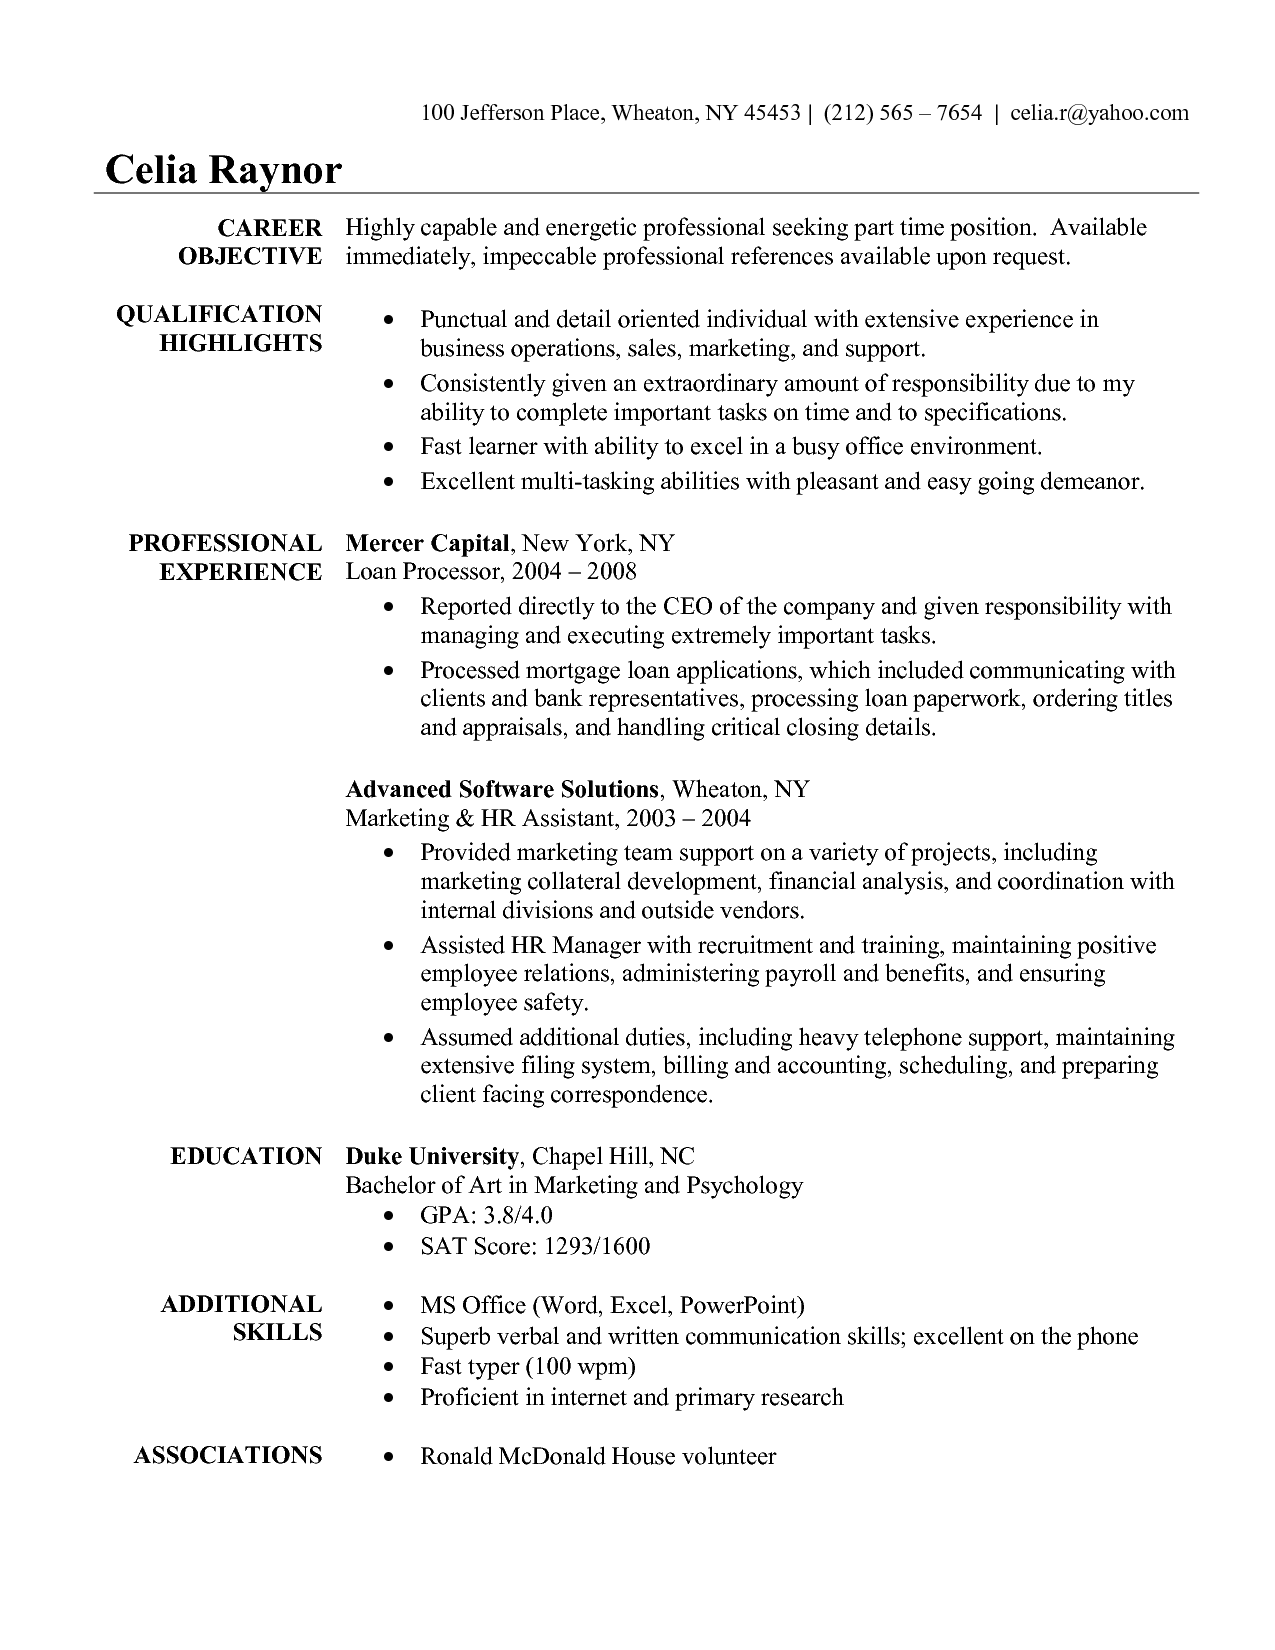 Resume Bullet Points Examples Server Resume Sample  Resume  Pinterest  Sample Resume Resume